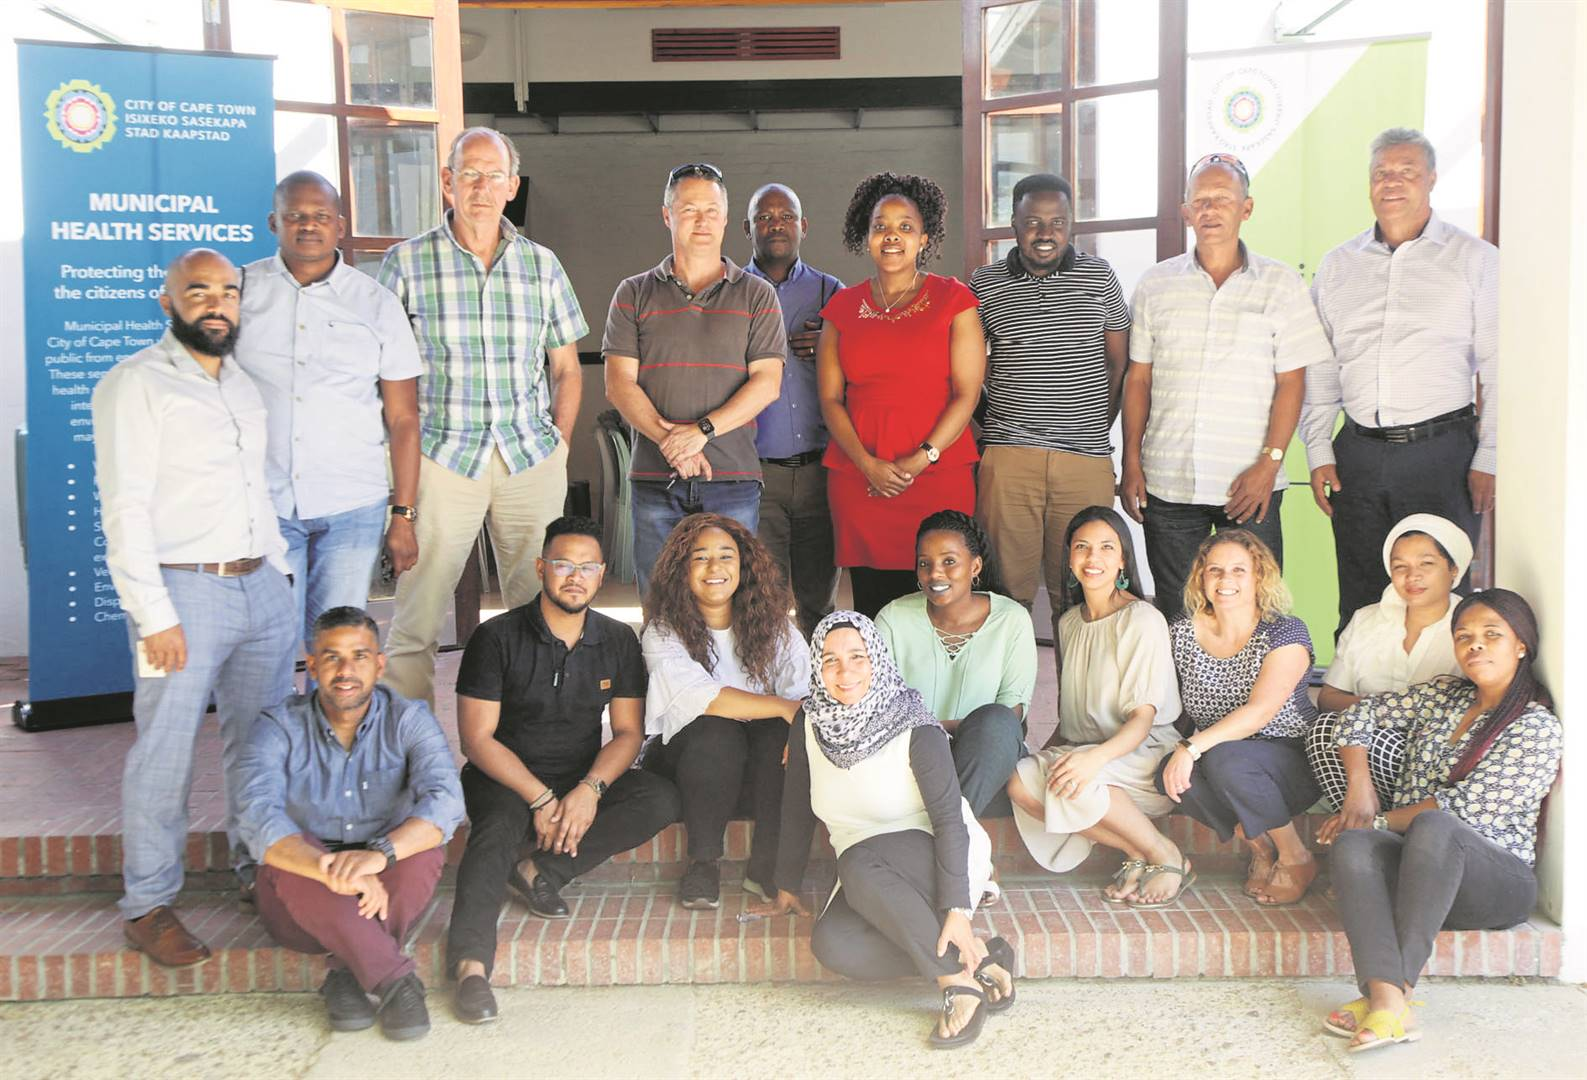 The City of Cape Town recognised its environmental health practitioners on World Environmental Health Day, Thursday 26 September.